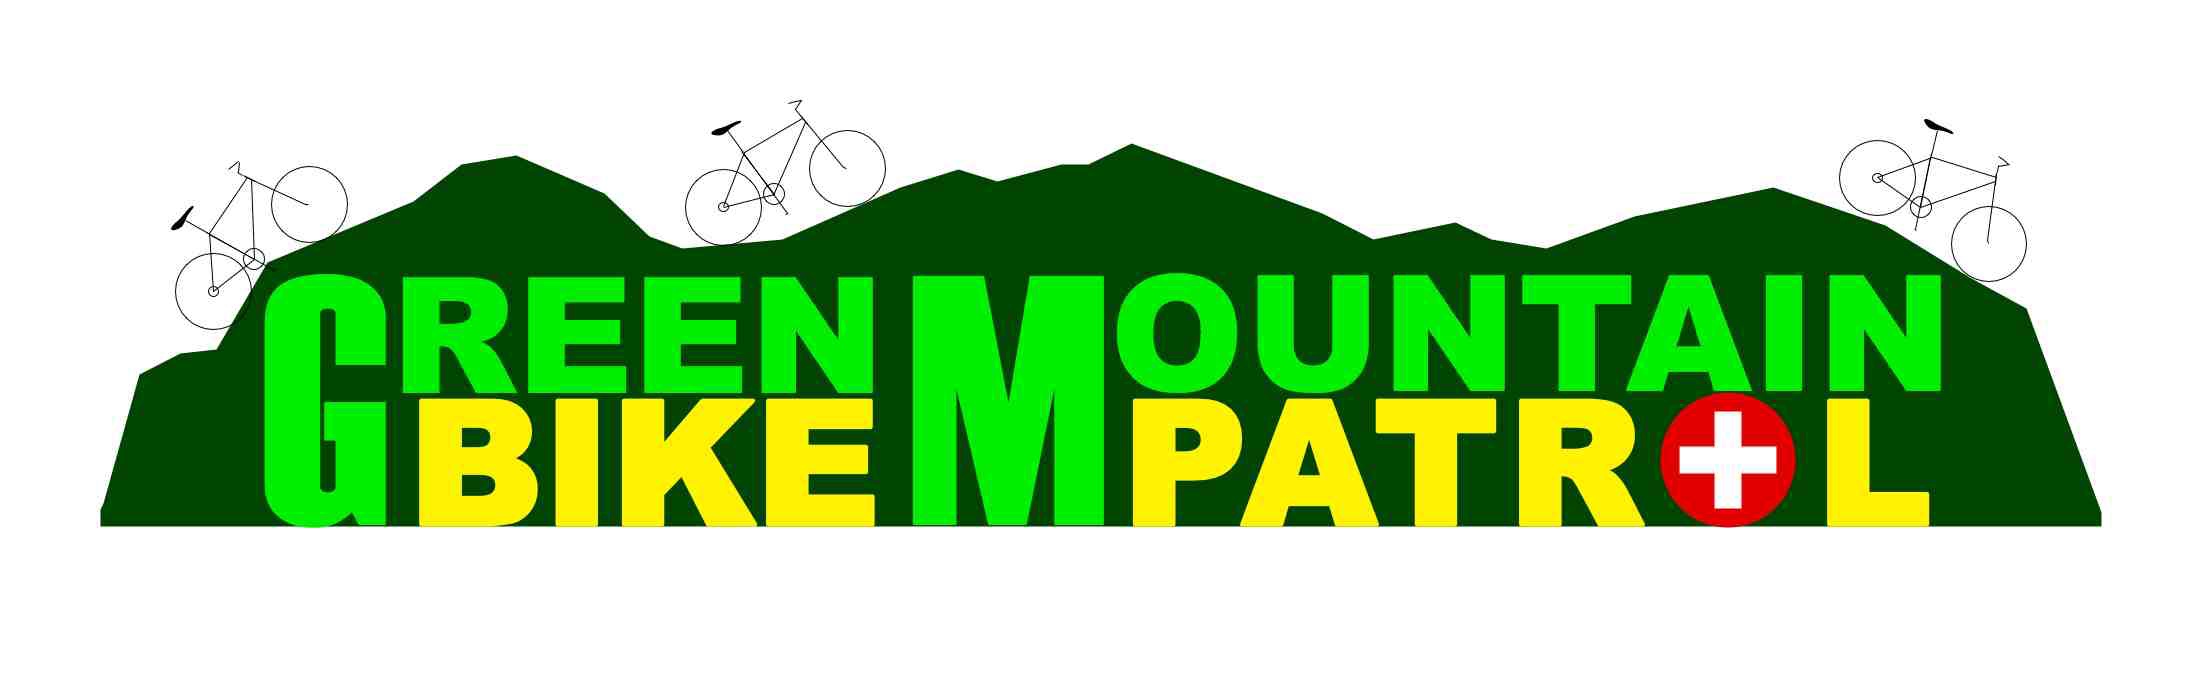 green_mountain_bike_patrol_logo.png